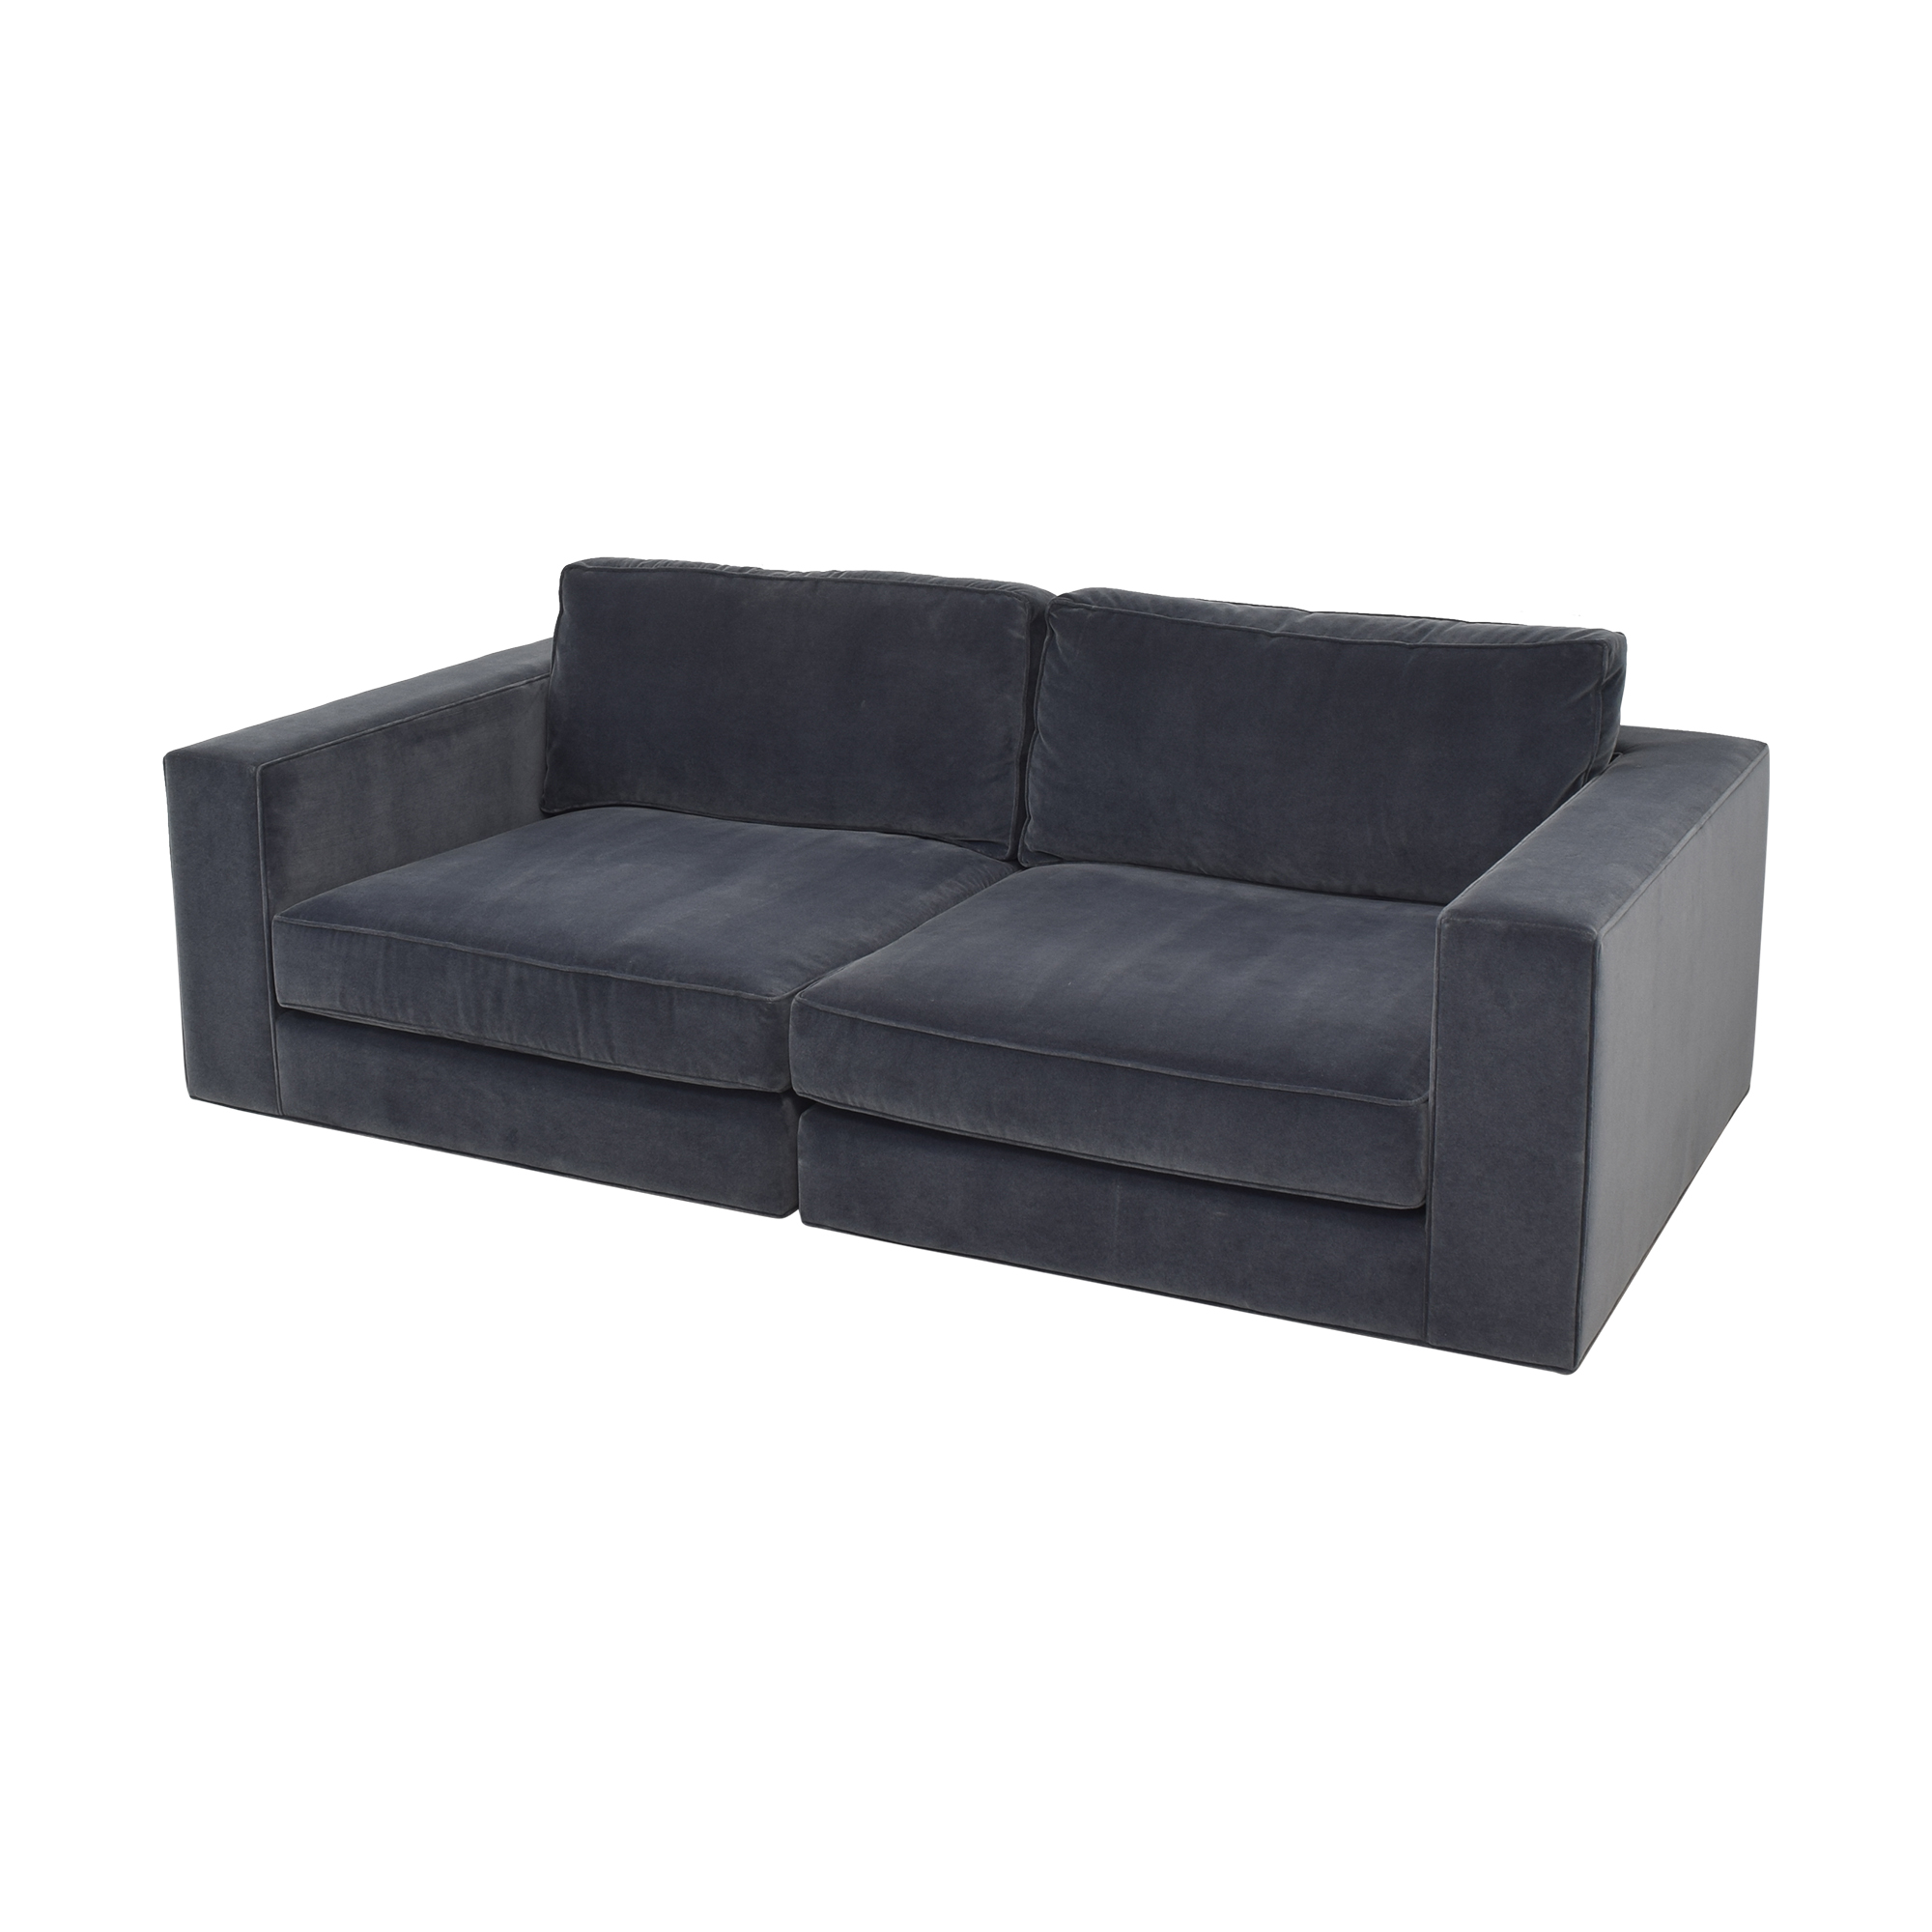 shop Restoration Hardware Restoration Hardware Maddox Sectional Sofa with Ottoman online